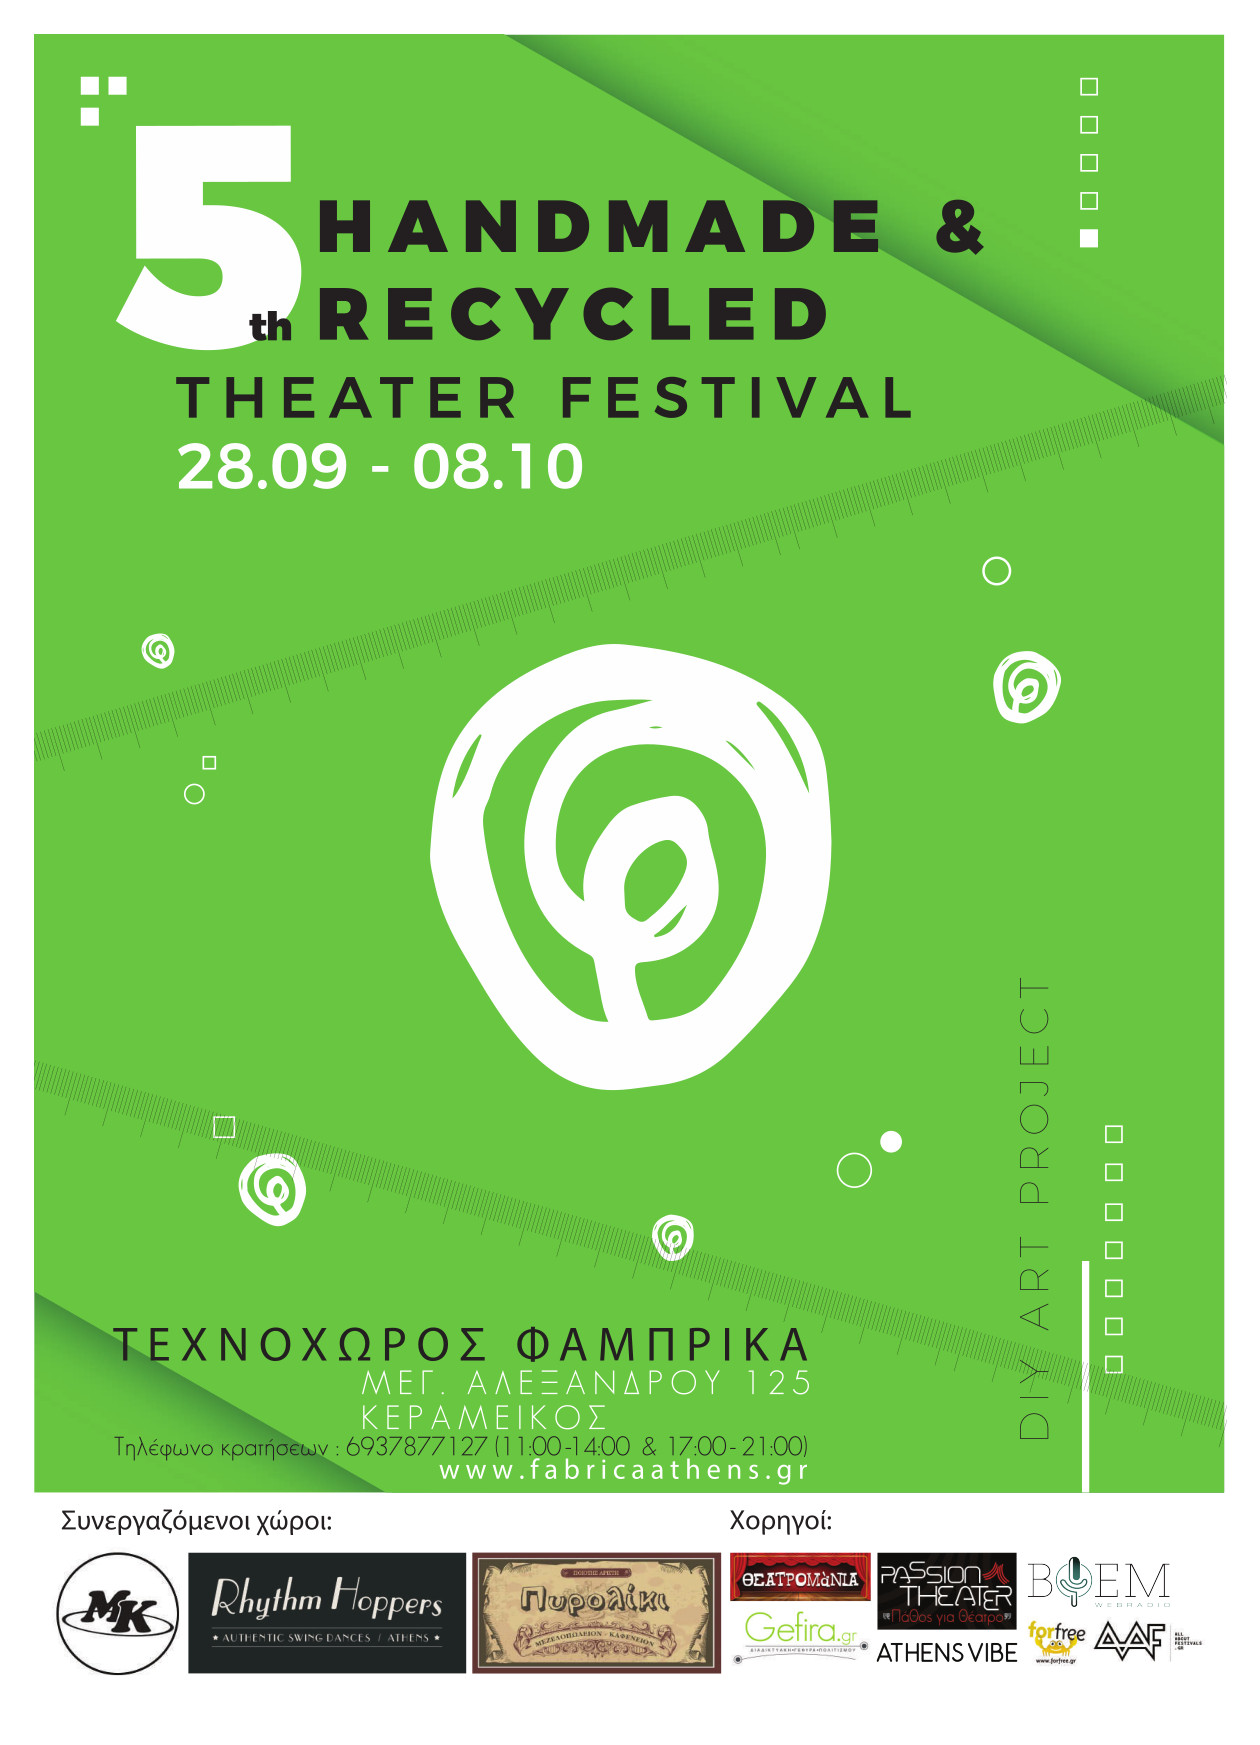 handmade_recycled_theater_festival_poster_info